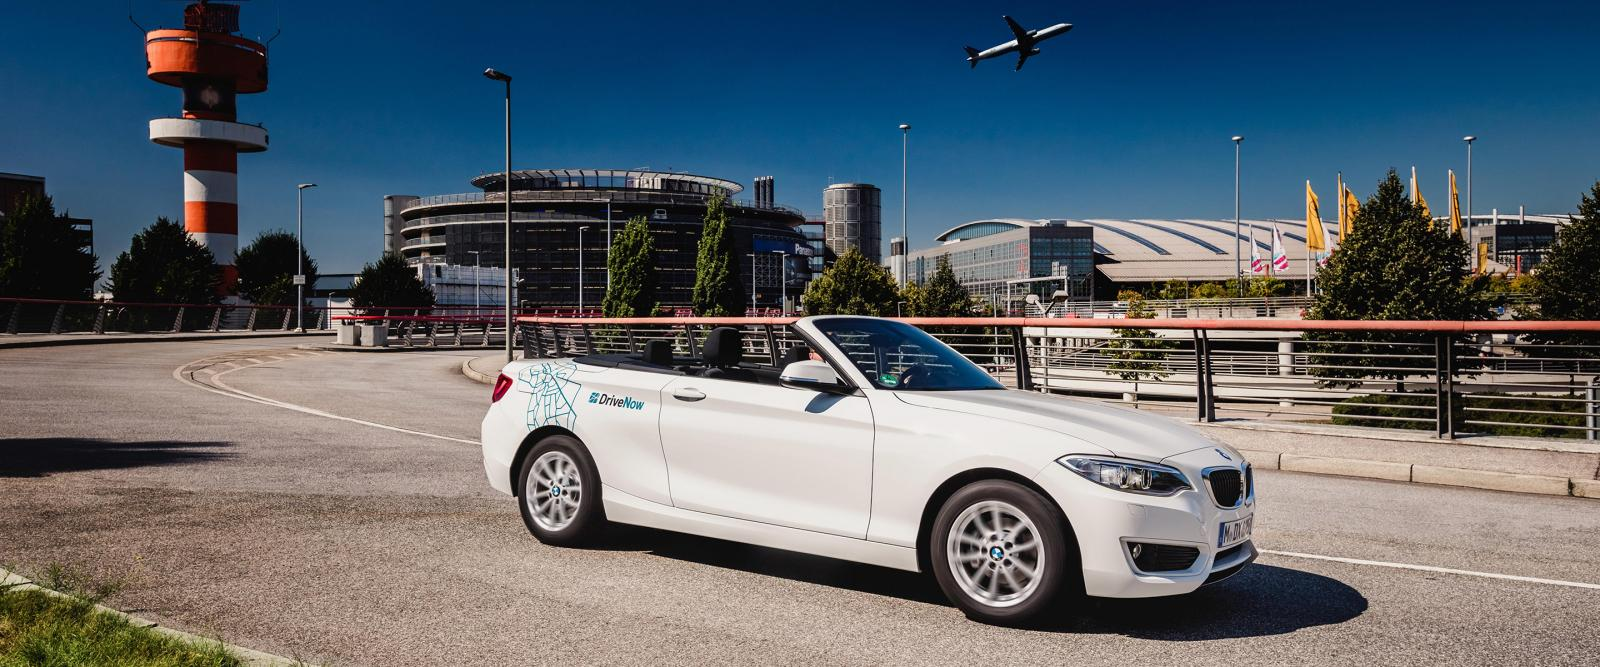 drivenow-carsharing-wien-airport-summer-special